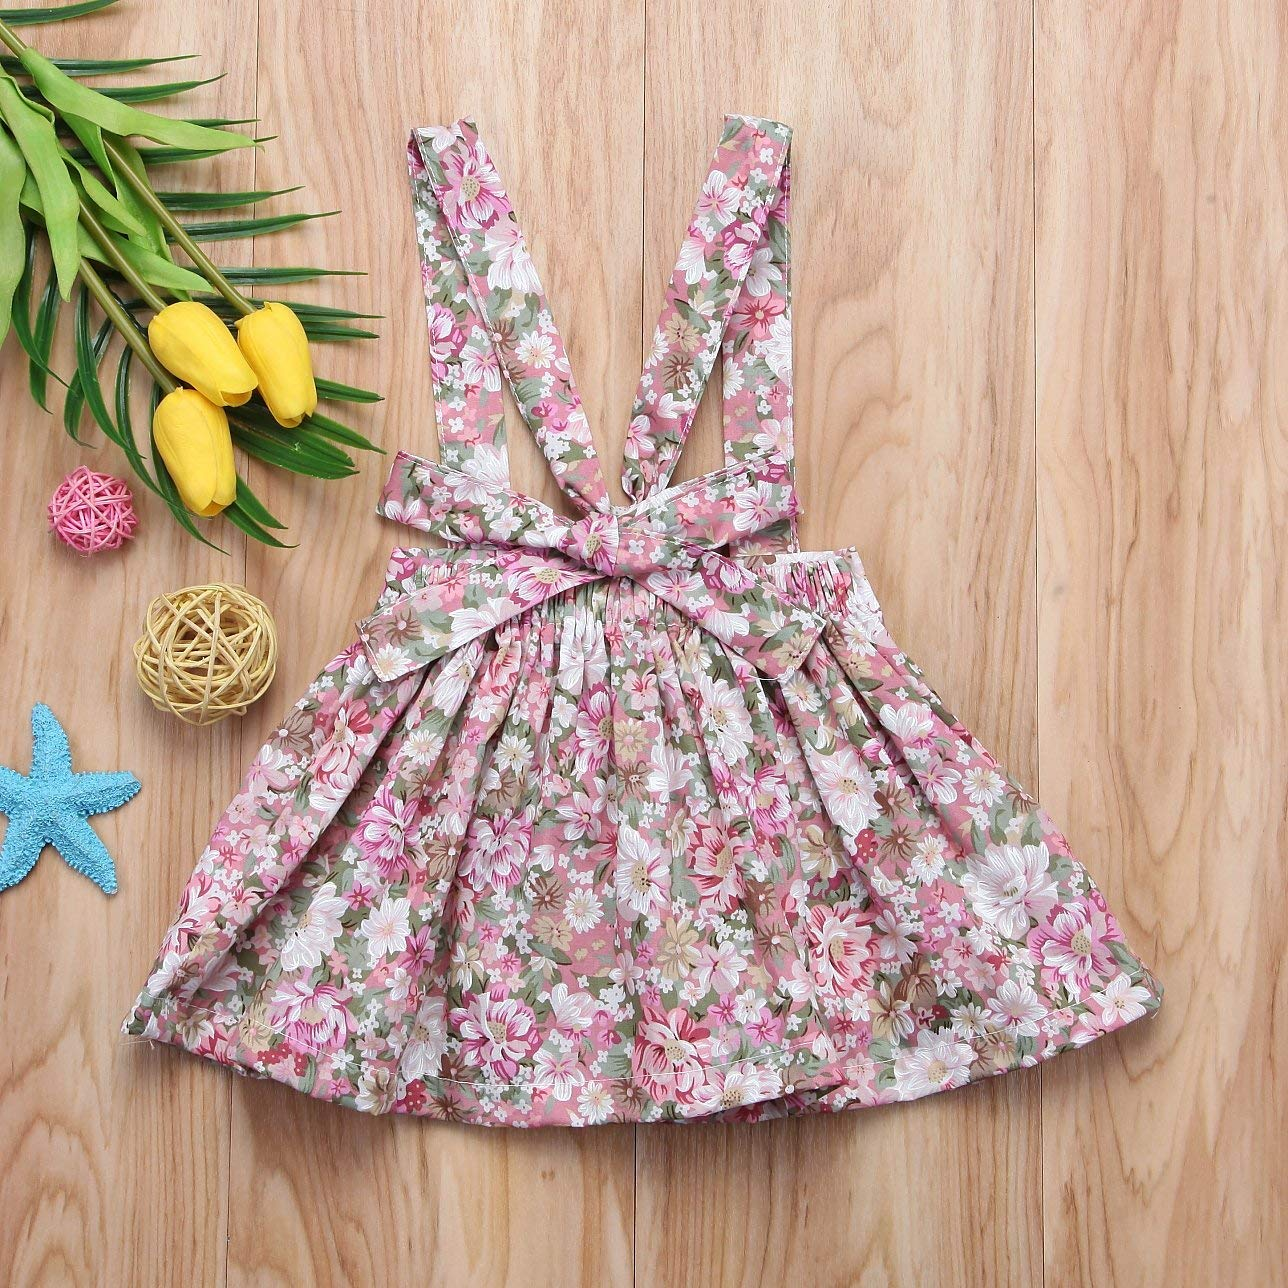 douleway Baby Floral Braces Suspenders Skirt Infant Toddler Ruffled Casual Underwire Summer Dress Summer Outfit Clothes